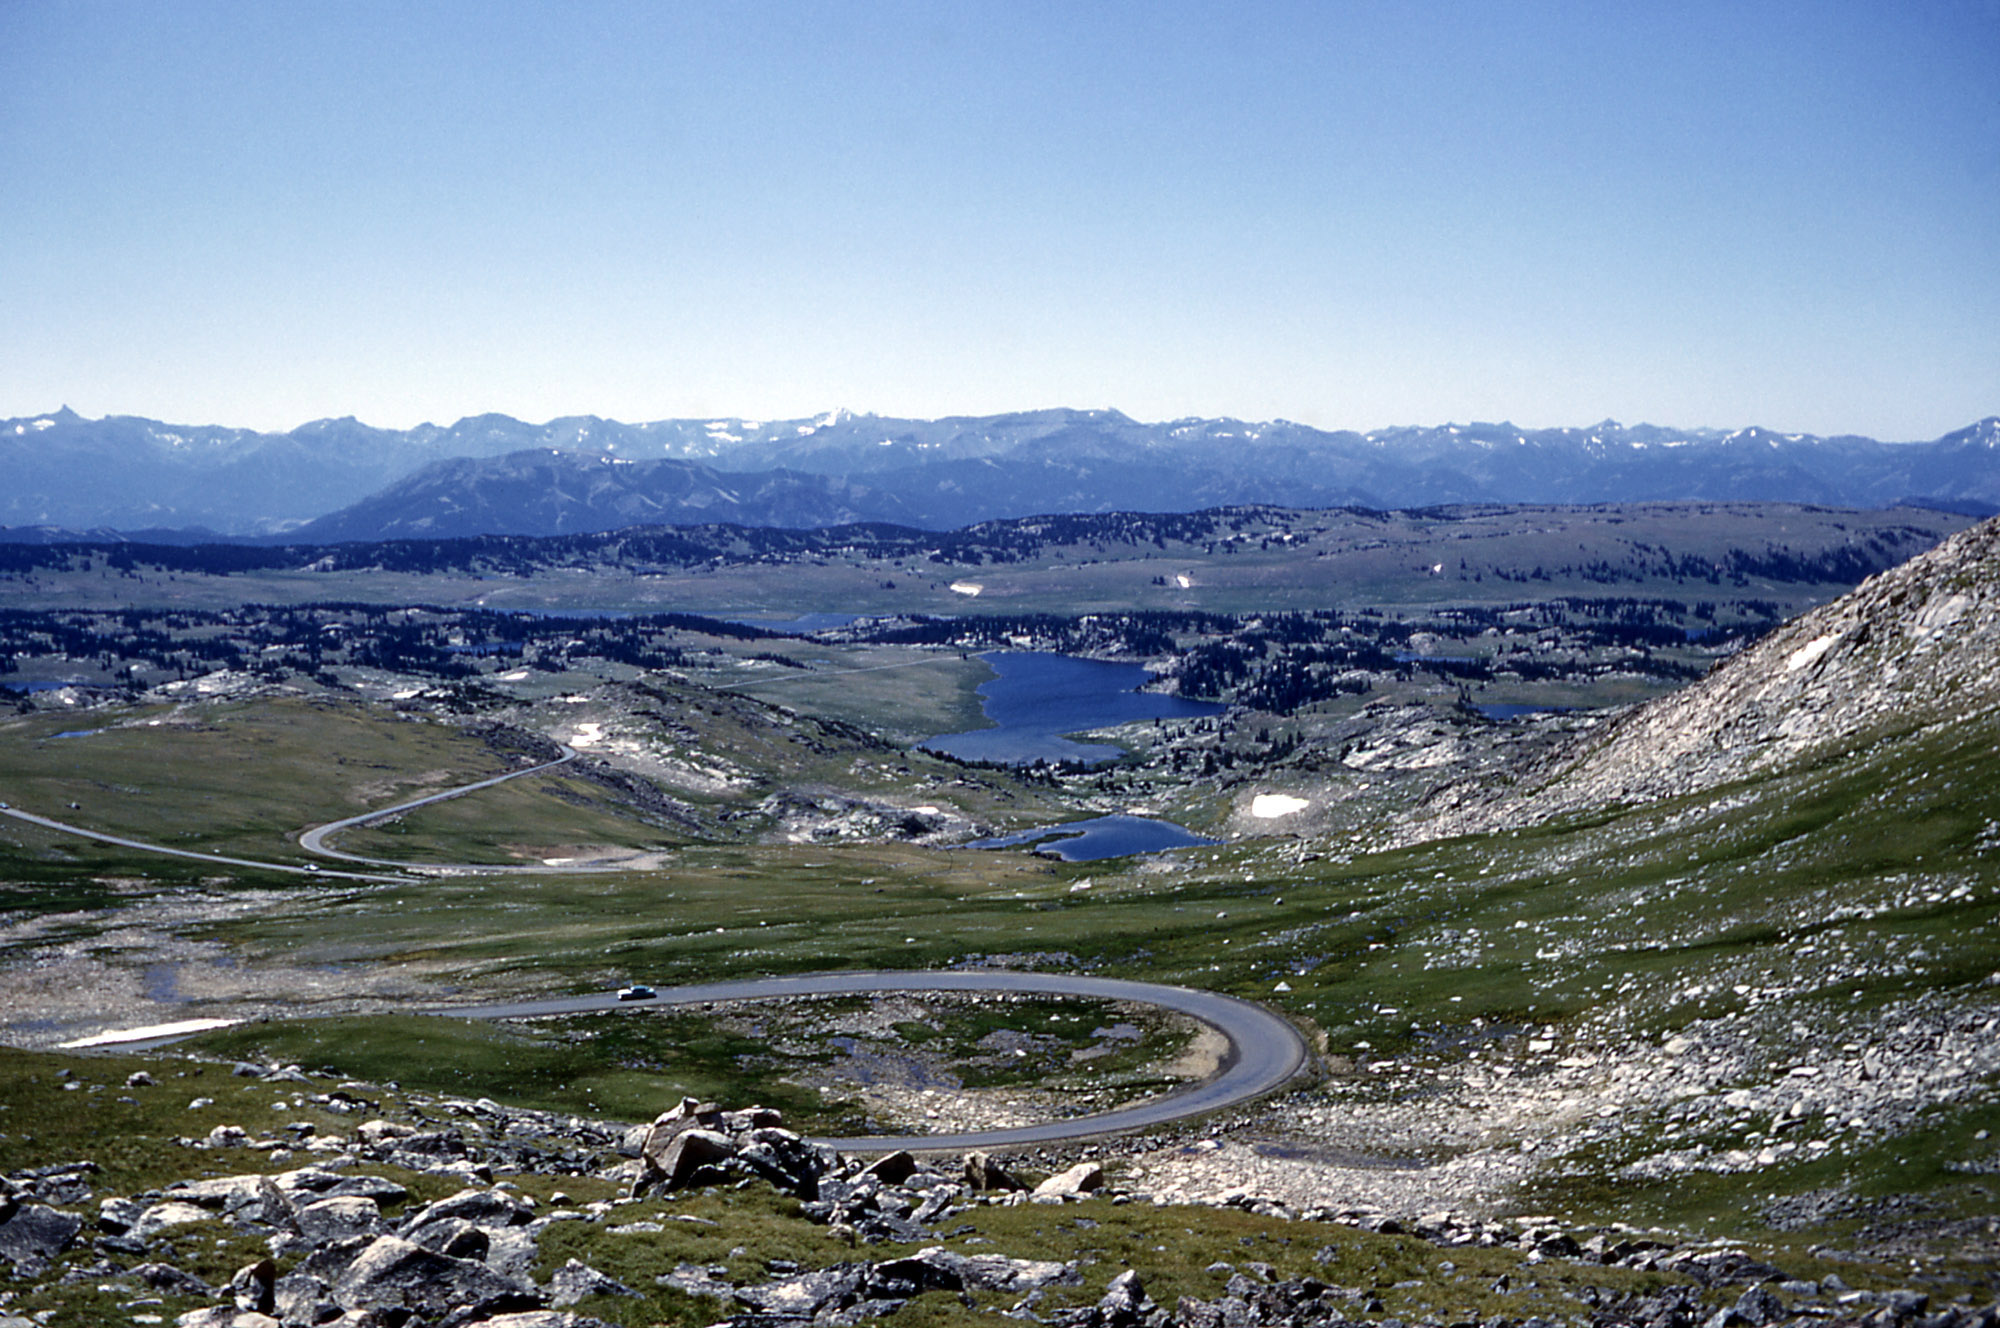 SE view from Beartooth Highway R Robinson No date